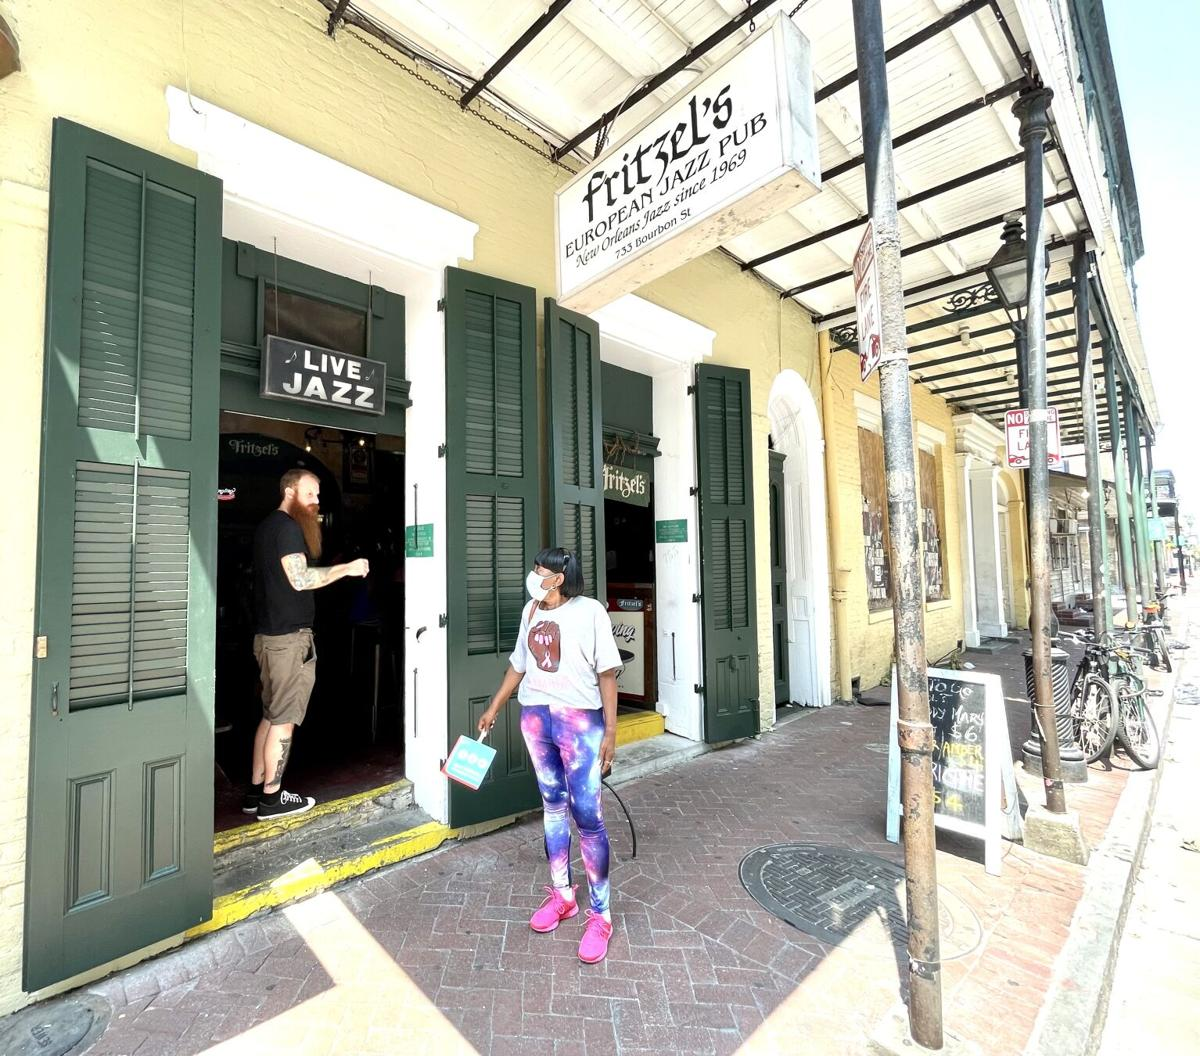 With power restored, Fritzel's European Jazz Pub was open, airconditioned, and relatively crowded(Photo by Doug MacCash, NOLA.com  The Times-Picayune  The New Orleans Advocate).jpeg